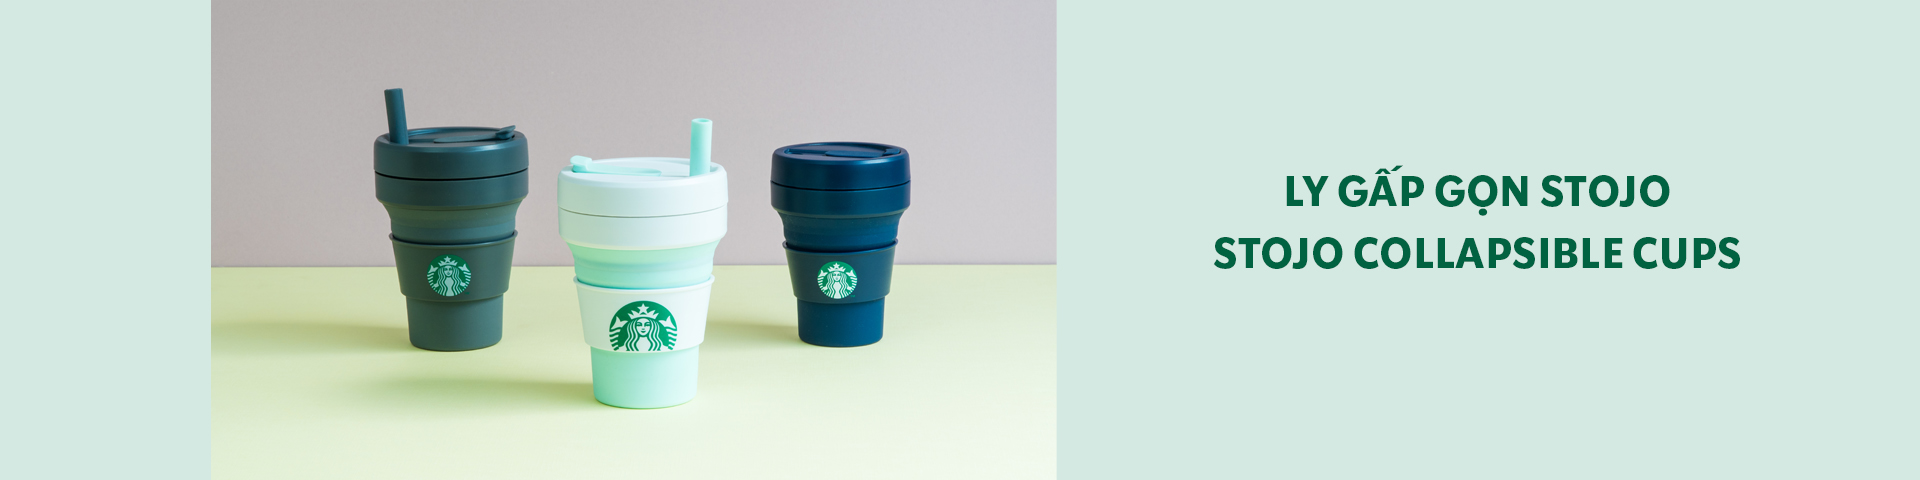 Stojo Collapsible Cups